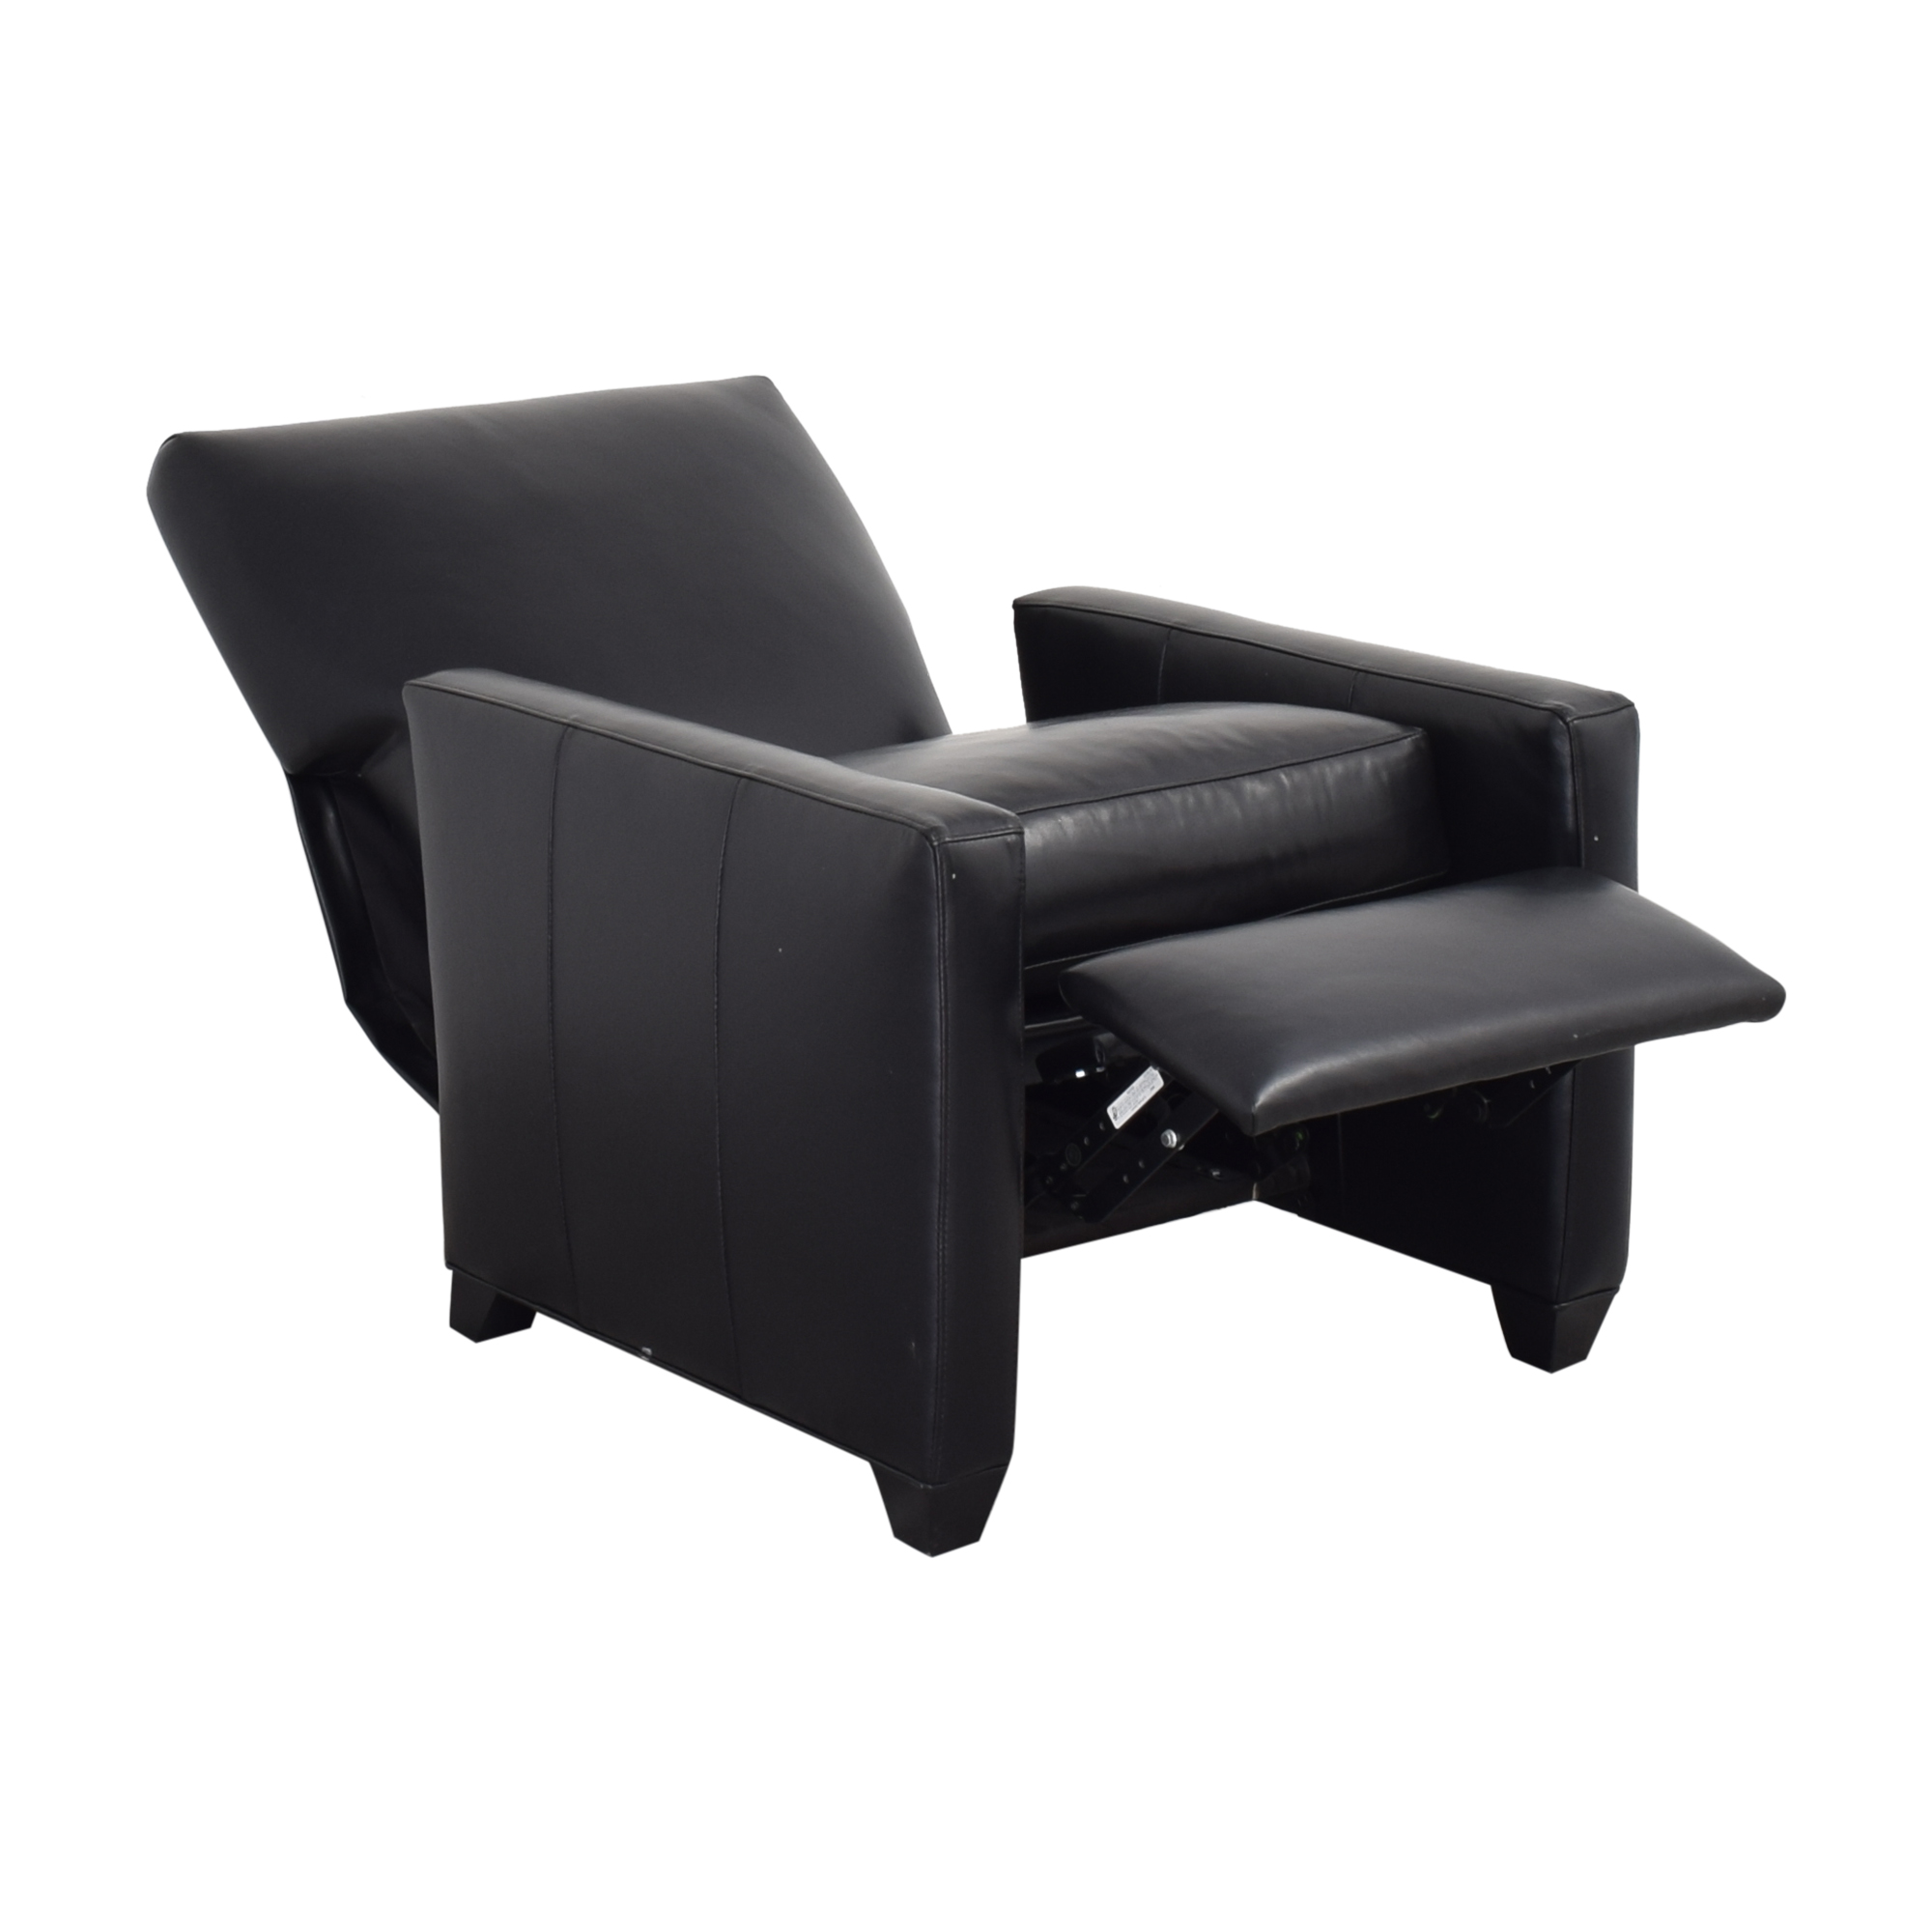 Crate & Barrel Crate & Barrel Tracy Leather Recliner Chairs